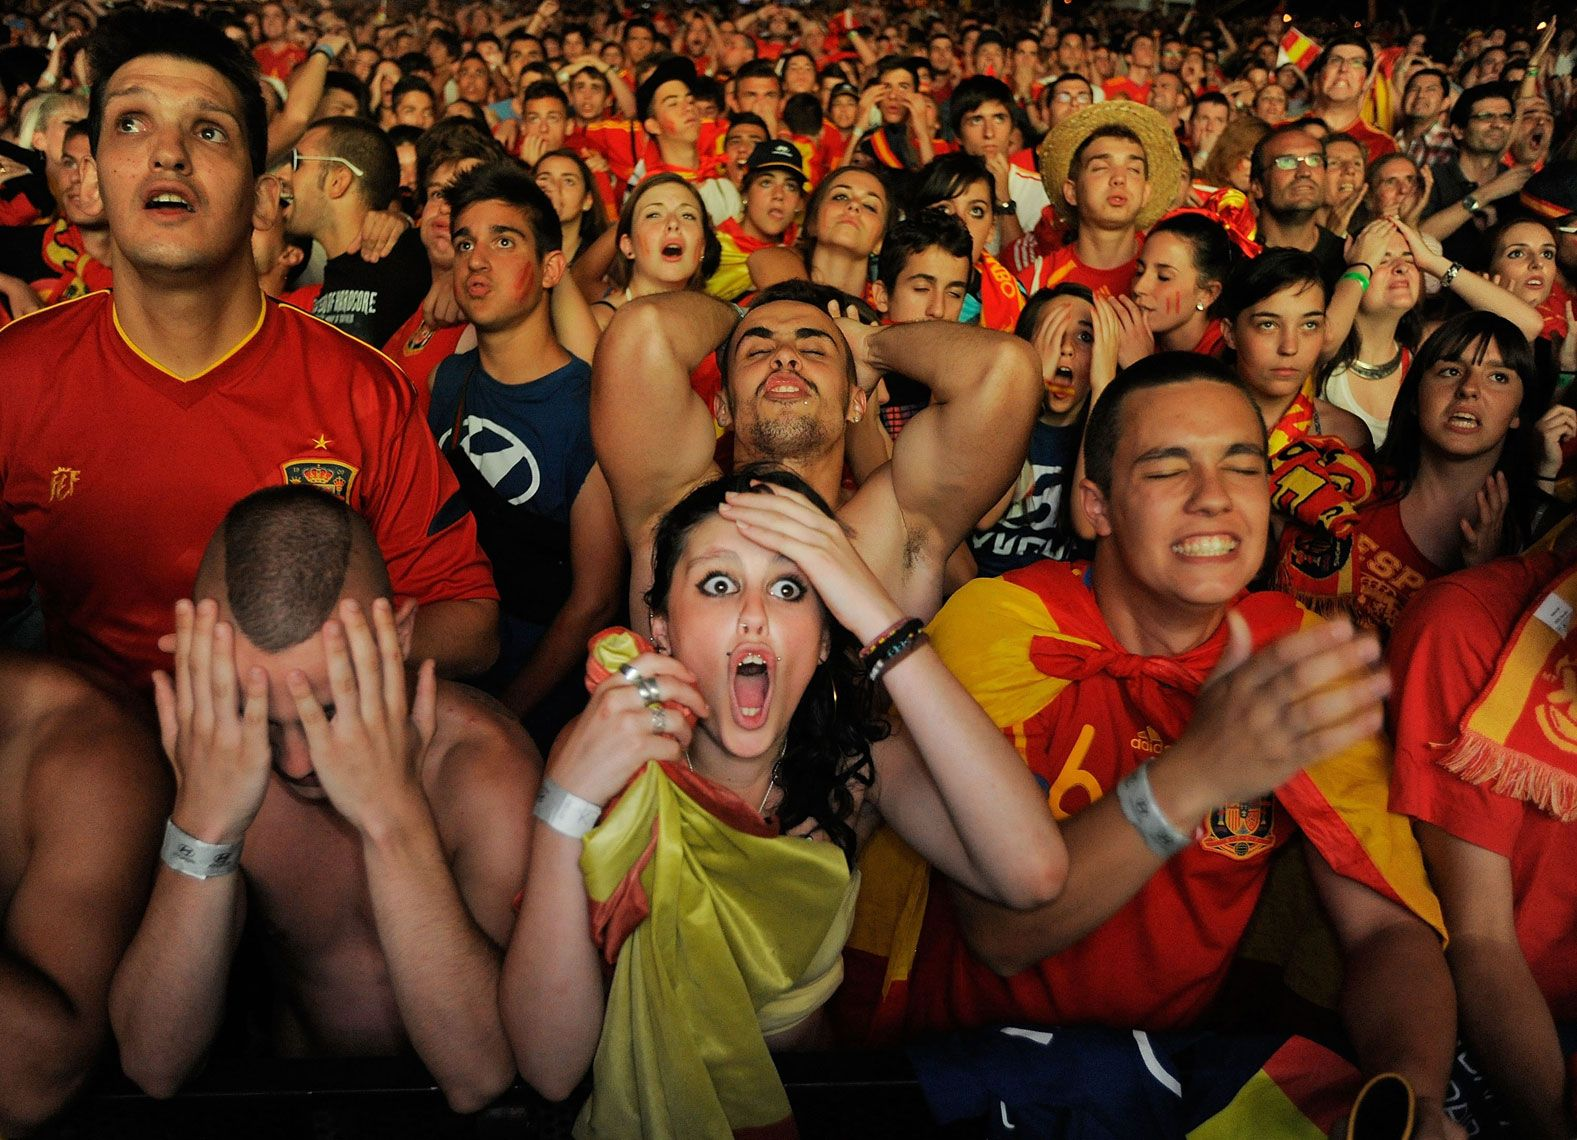 Spanish football fans watching a game